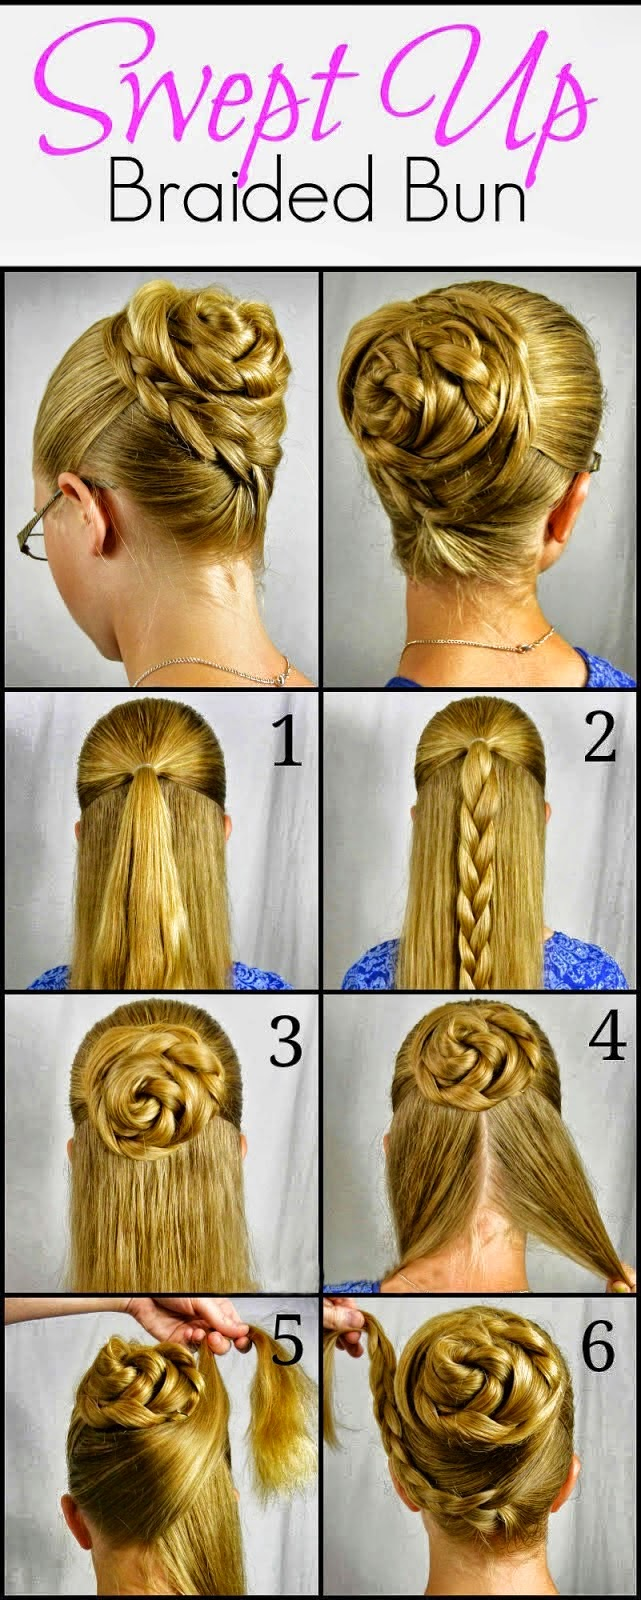 Astounding Swept Up Rose Braid Bun Hairstyle Step By Step Beauty And Short Hairstyles For Black Women Fulllsitofus